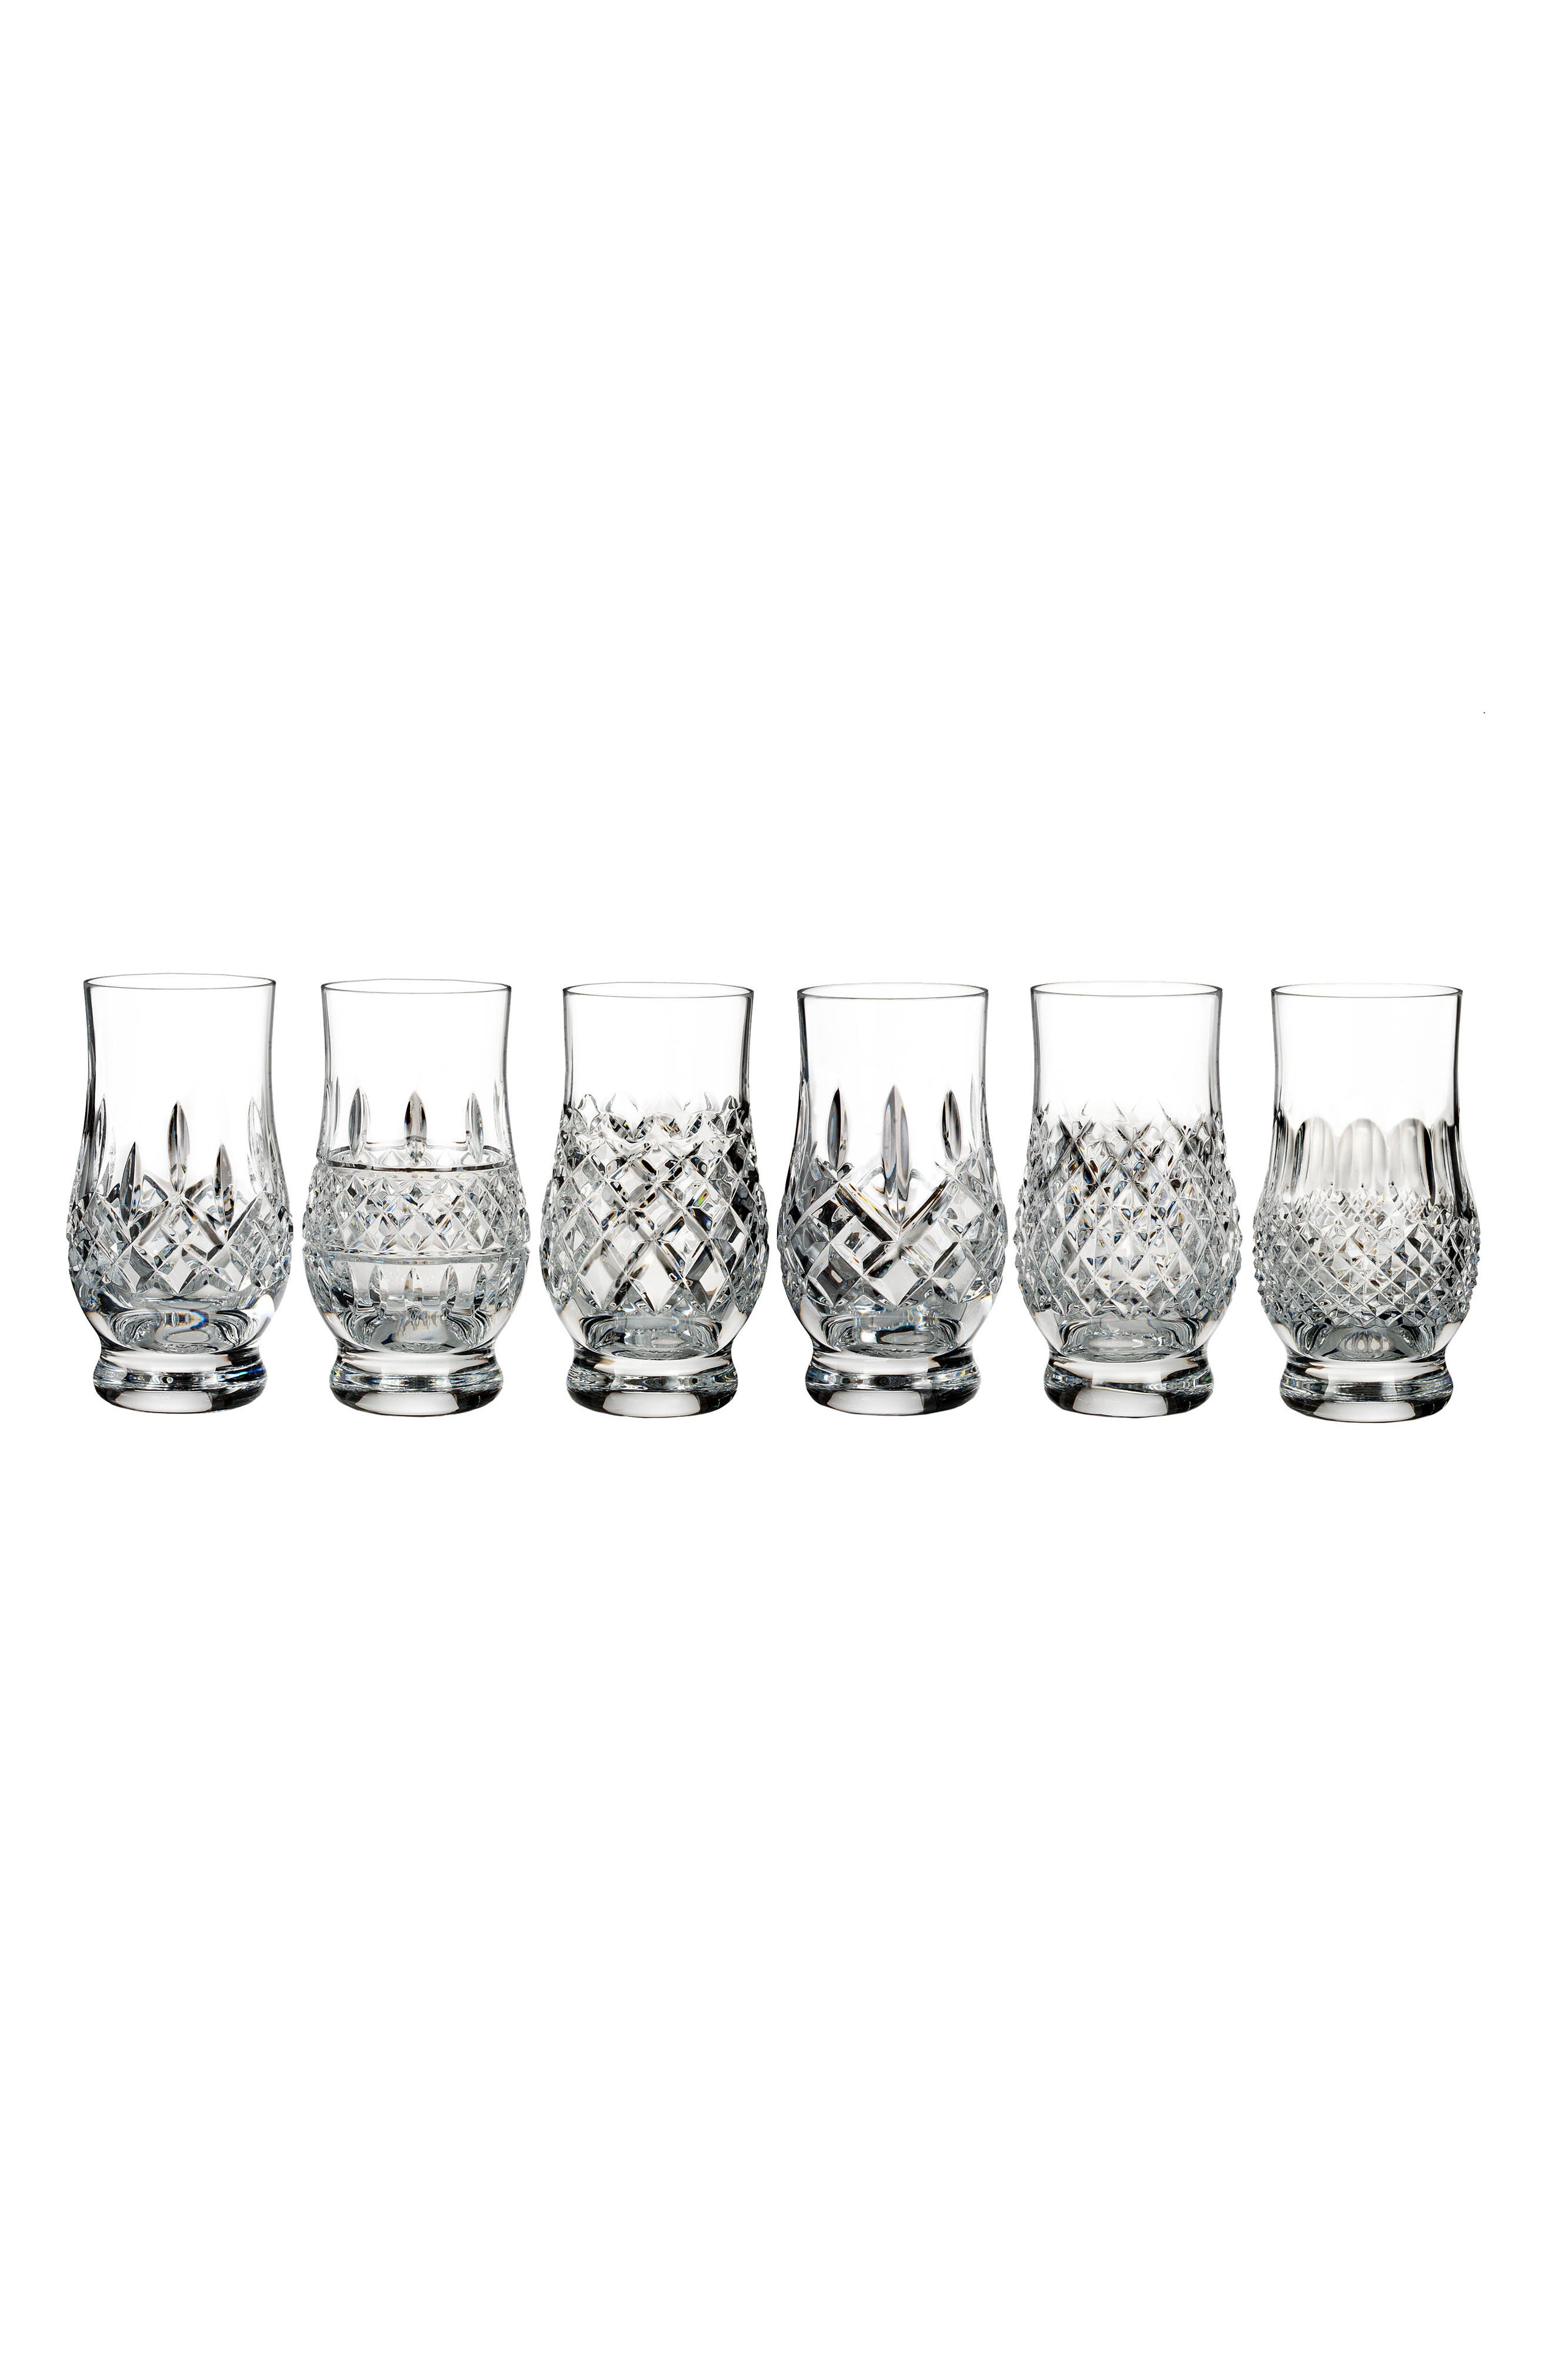 Connoisseur Set of 6 Footed Lead Crystal Tumblers,                         Main,                         color, Crystal